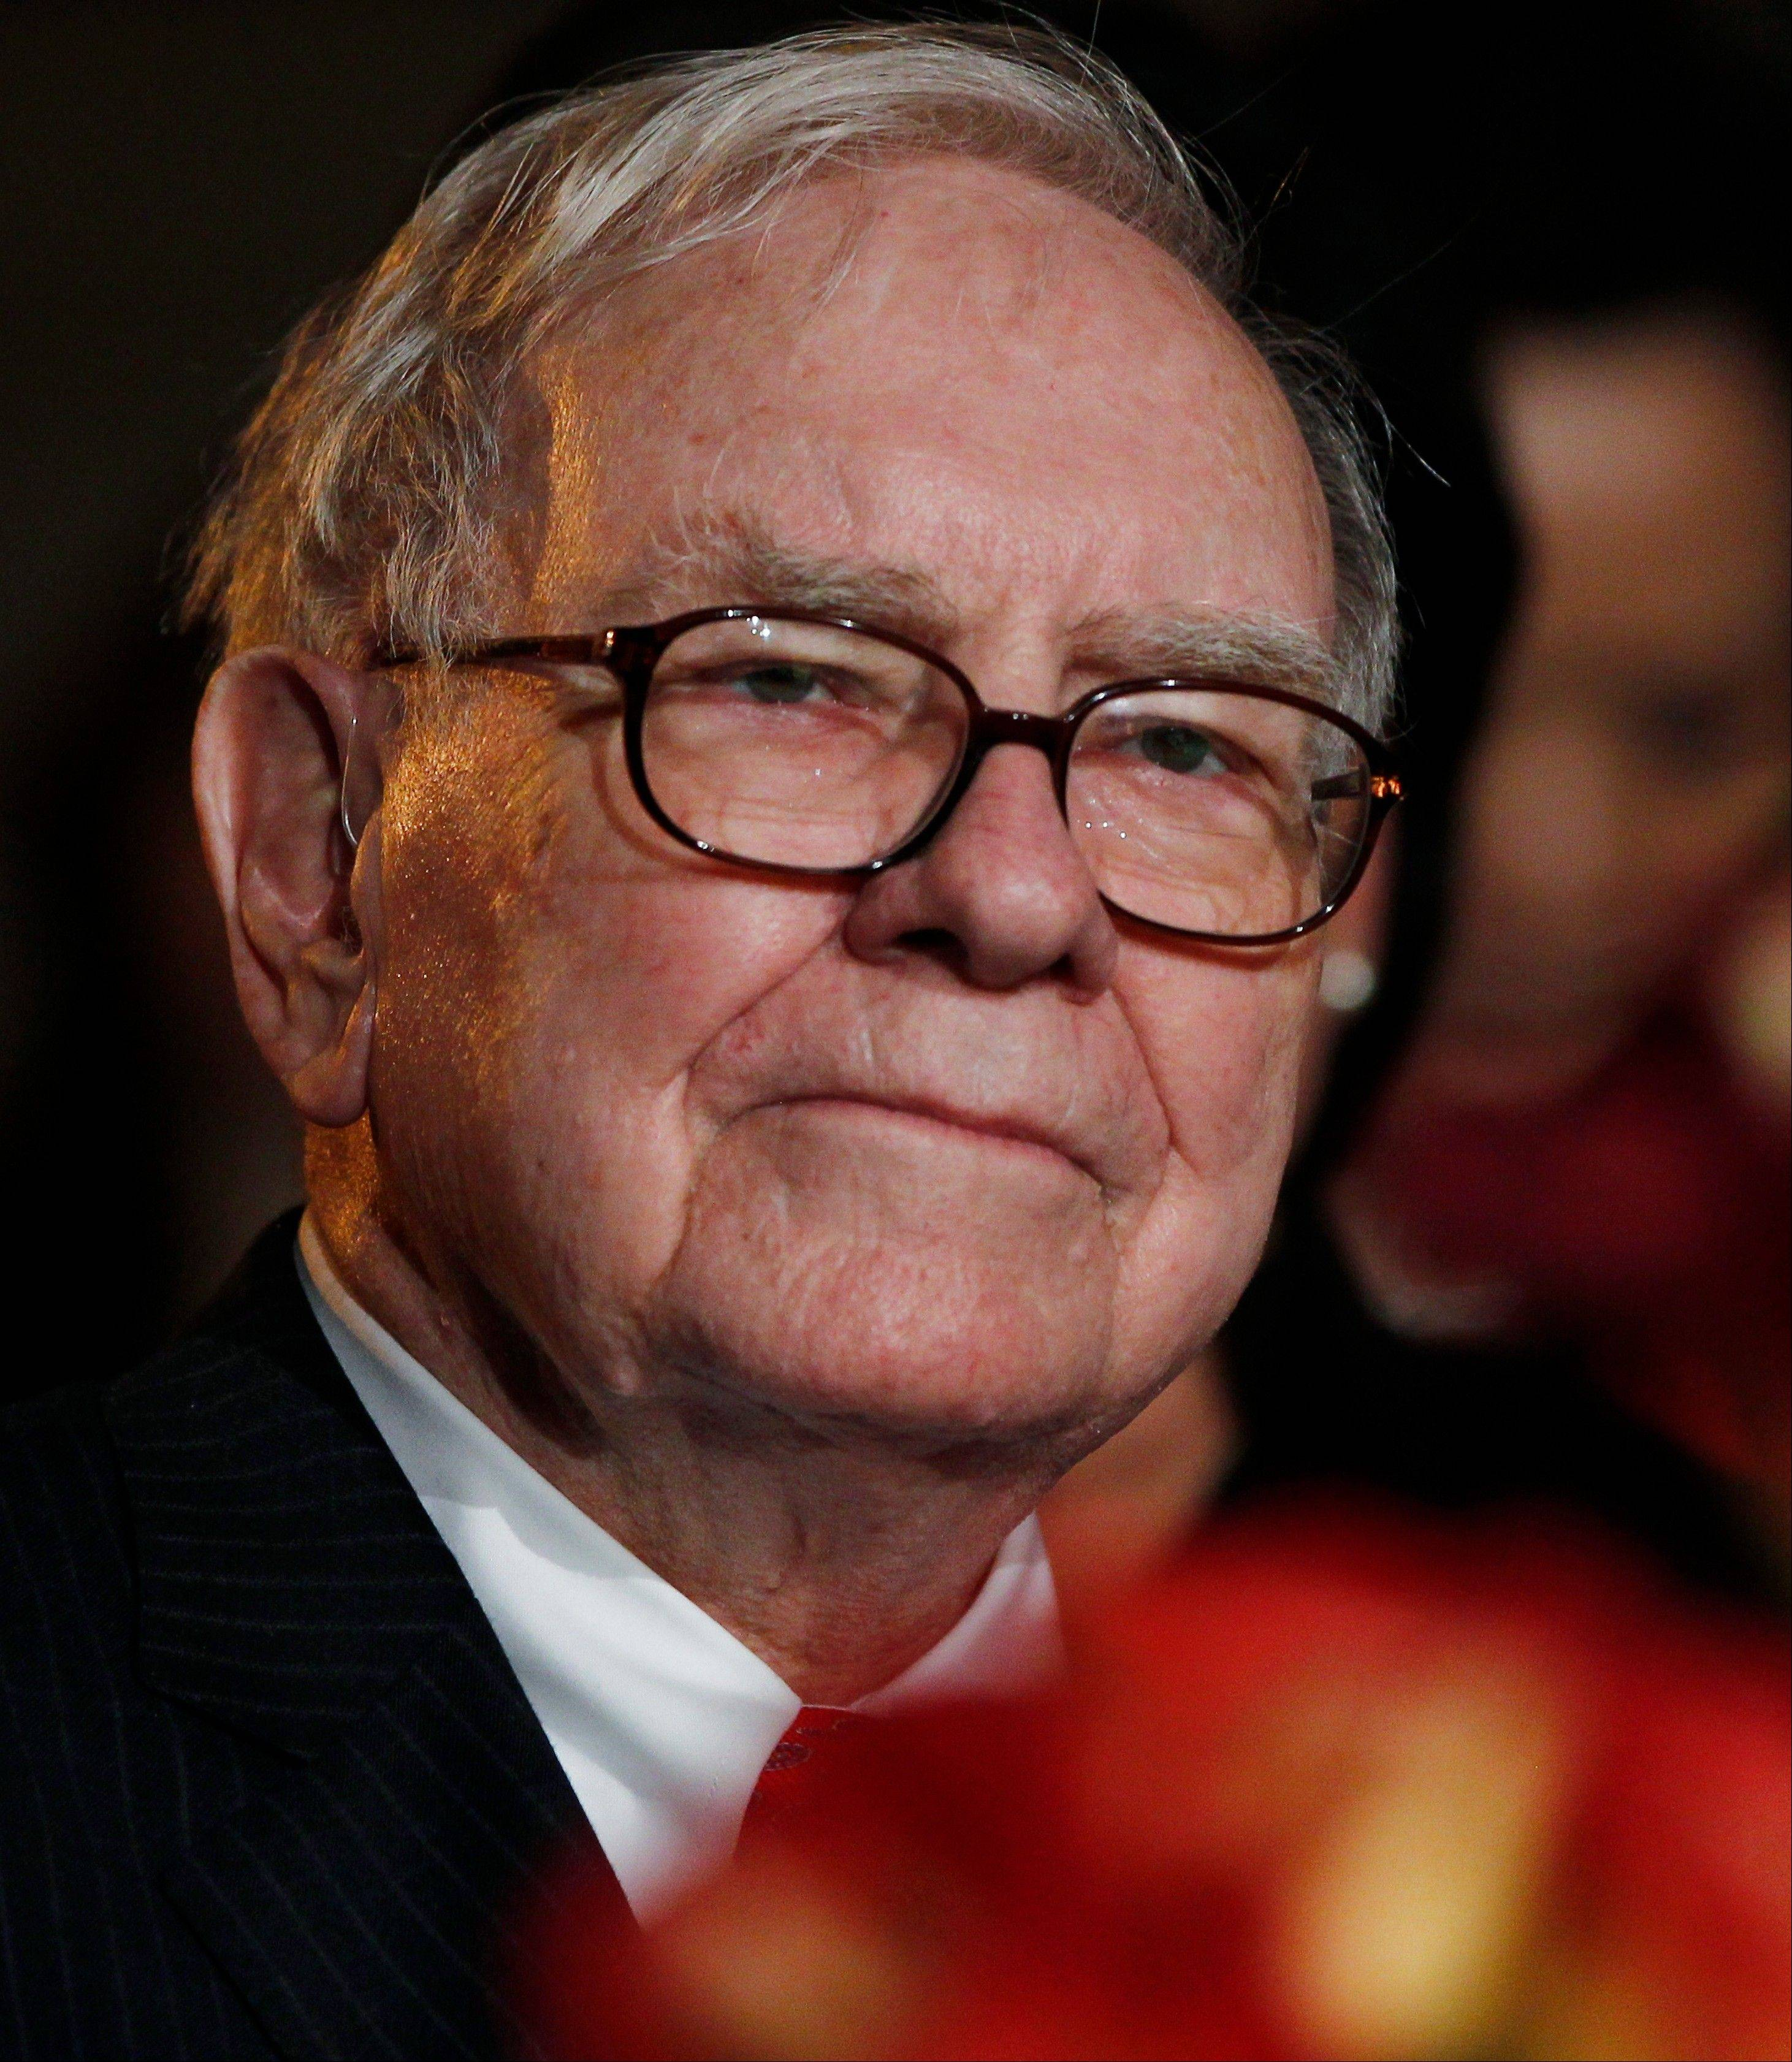 Warren Buffett, the self-made billionaire and son of a former Republican congressman, has widened the rift with his father�s party by pressing for tax increases on the wealthy and reinforcing ties with President Barack Obama.